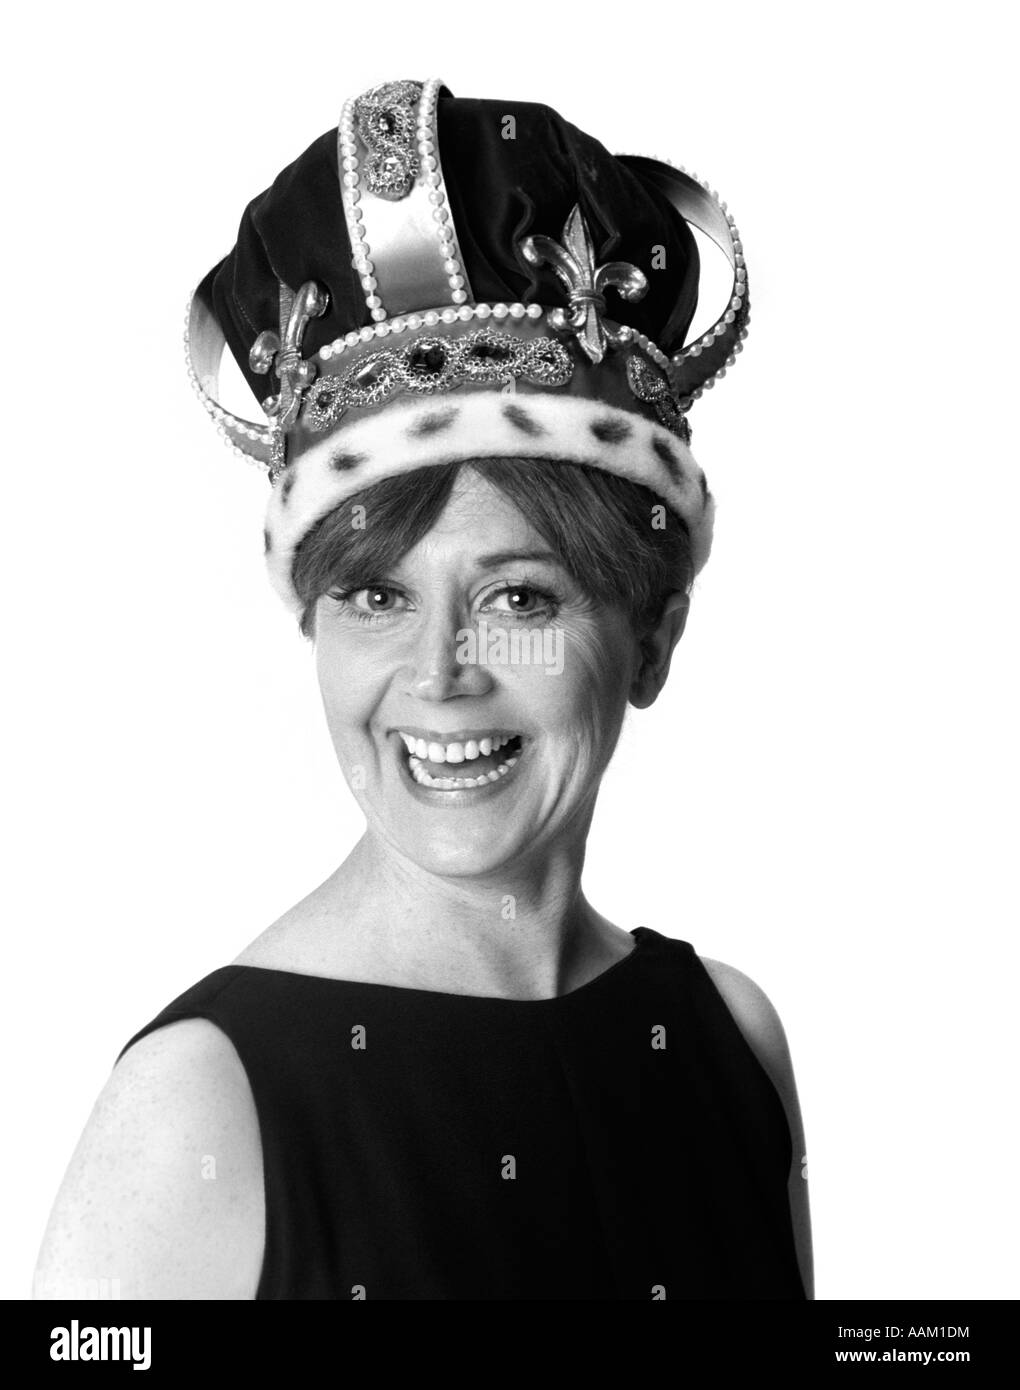 1970s SMILING PORTRAIT WOMAN WEARING QUEEN'S CROWN LOOKING AT CAMERA - Stock Image